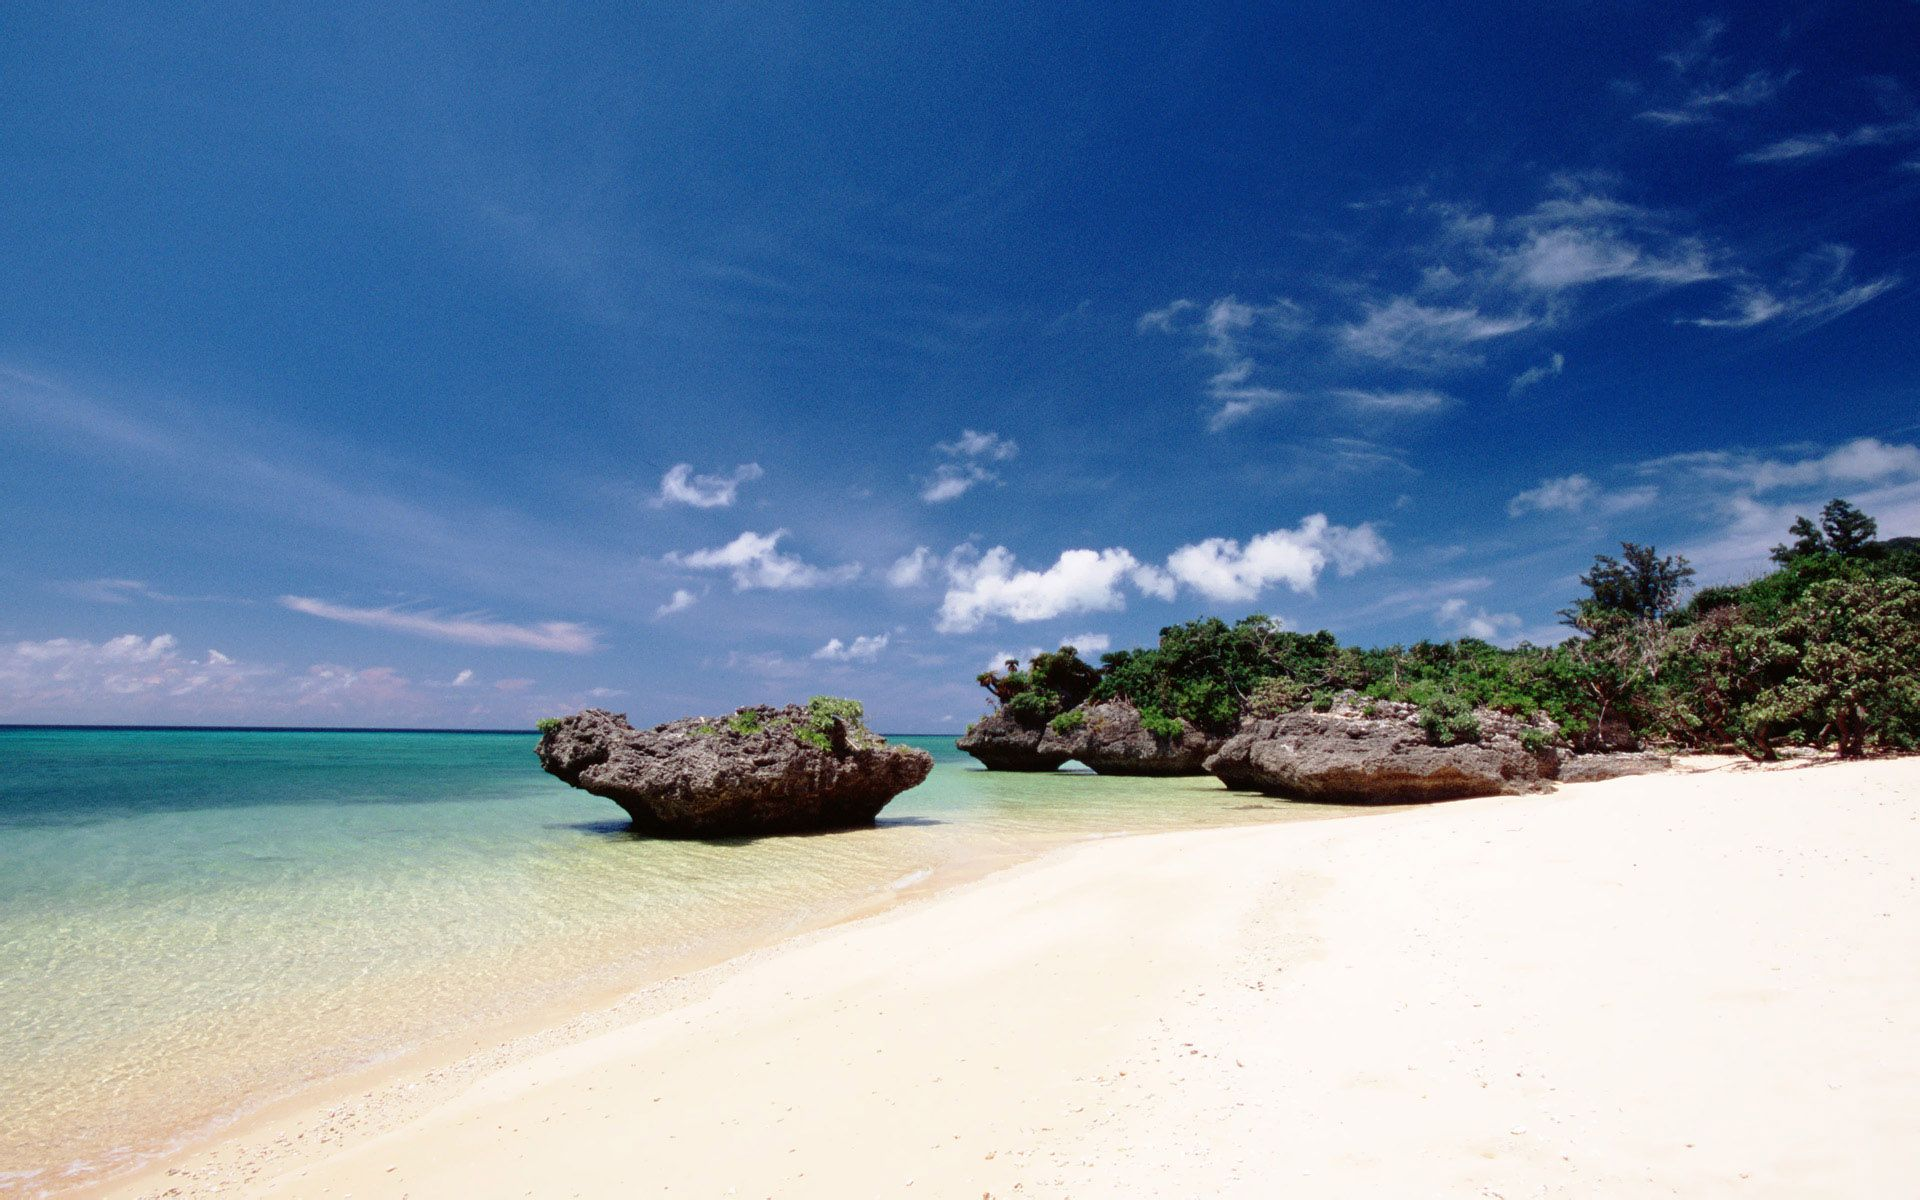 okinawa images | Japan Okinawa Island Beaches Wallpapers ...